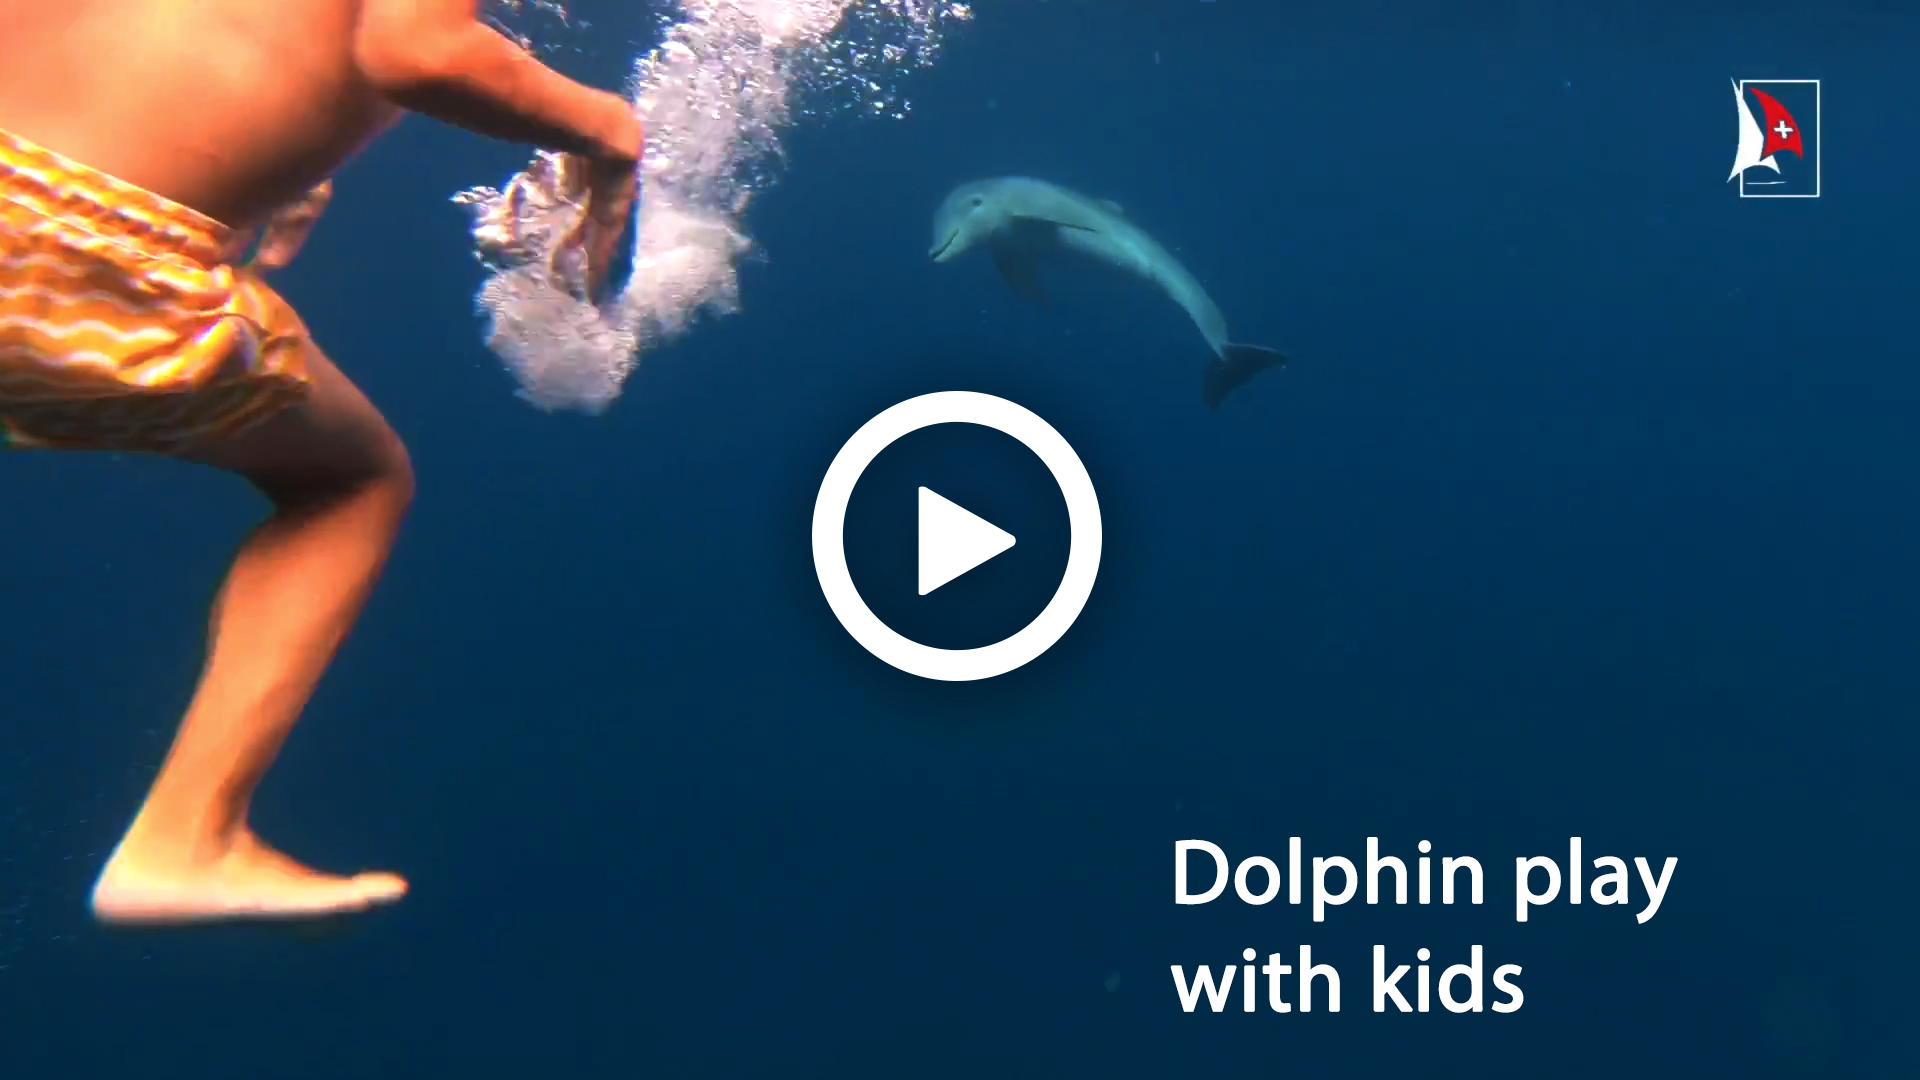 Sailing video to sale - dolphin play with kids